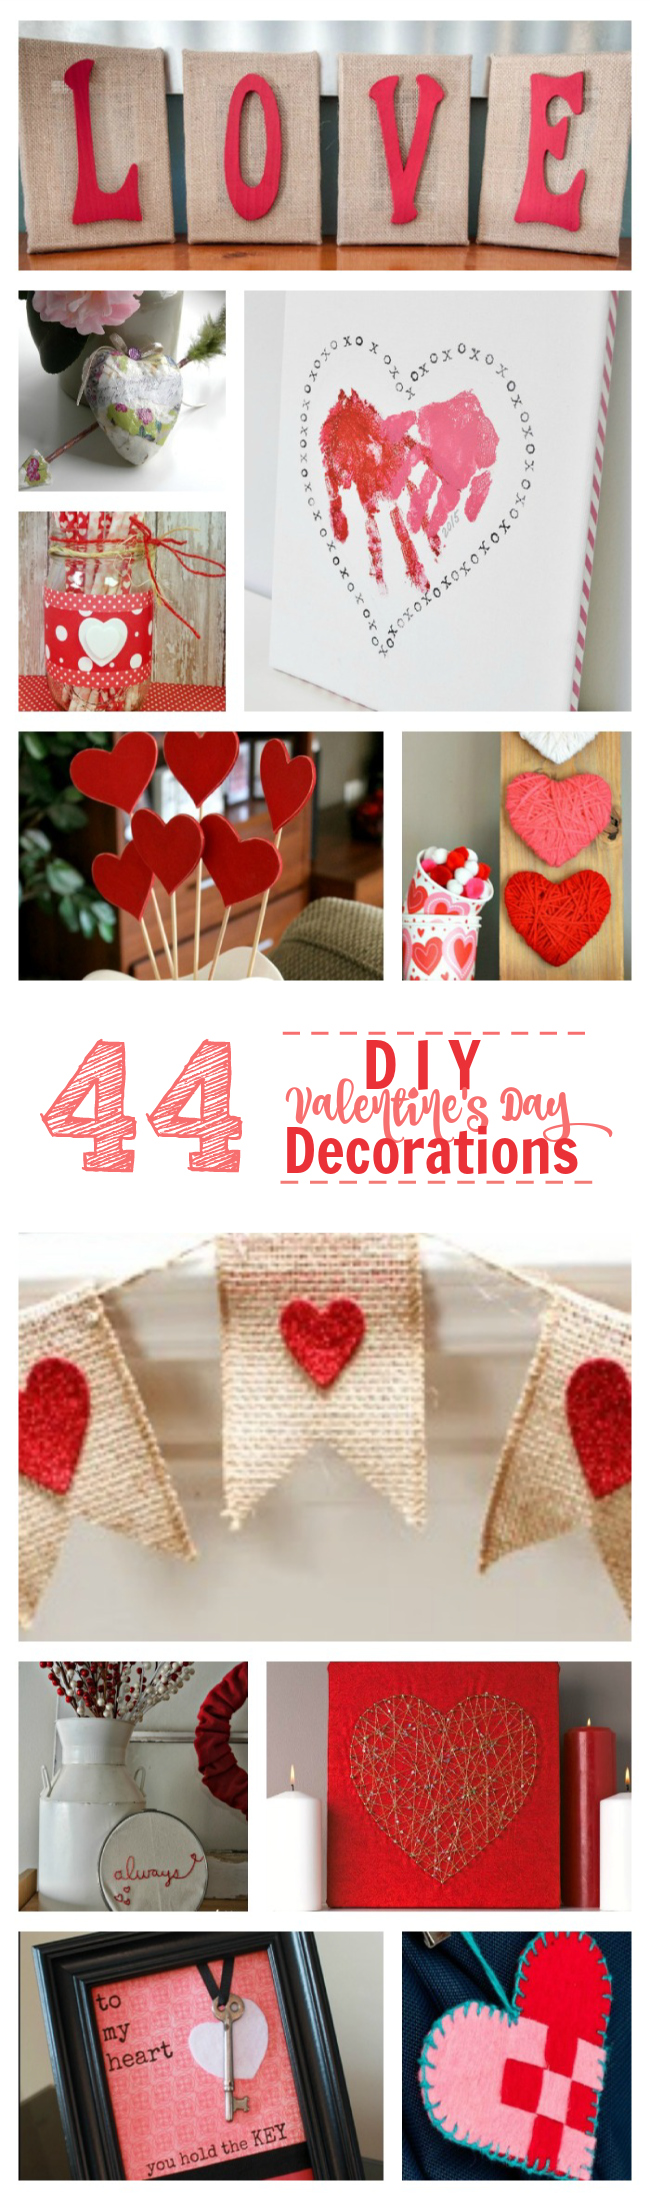 44 diy valentine 39 s day decor projects lifestyle blog for Valentine decorations to make at home